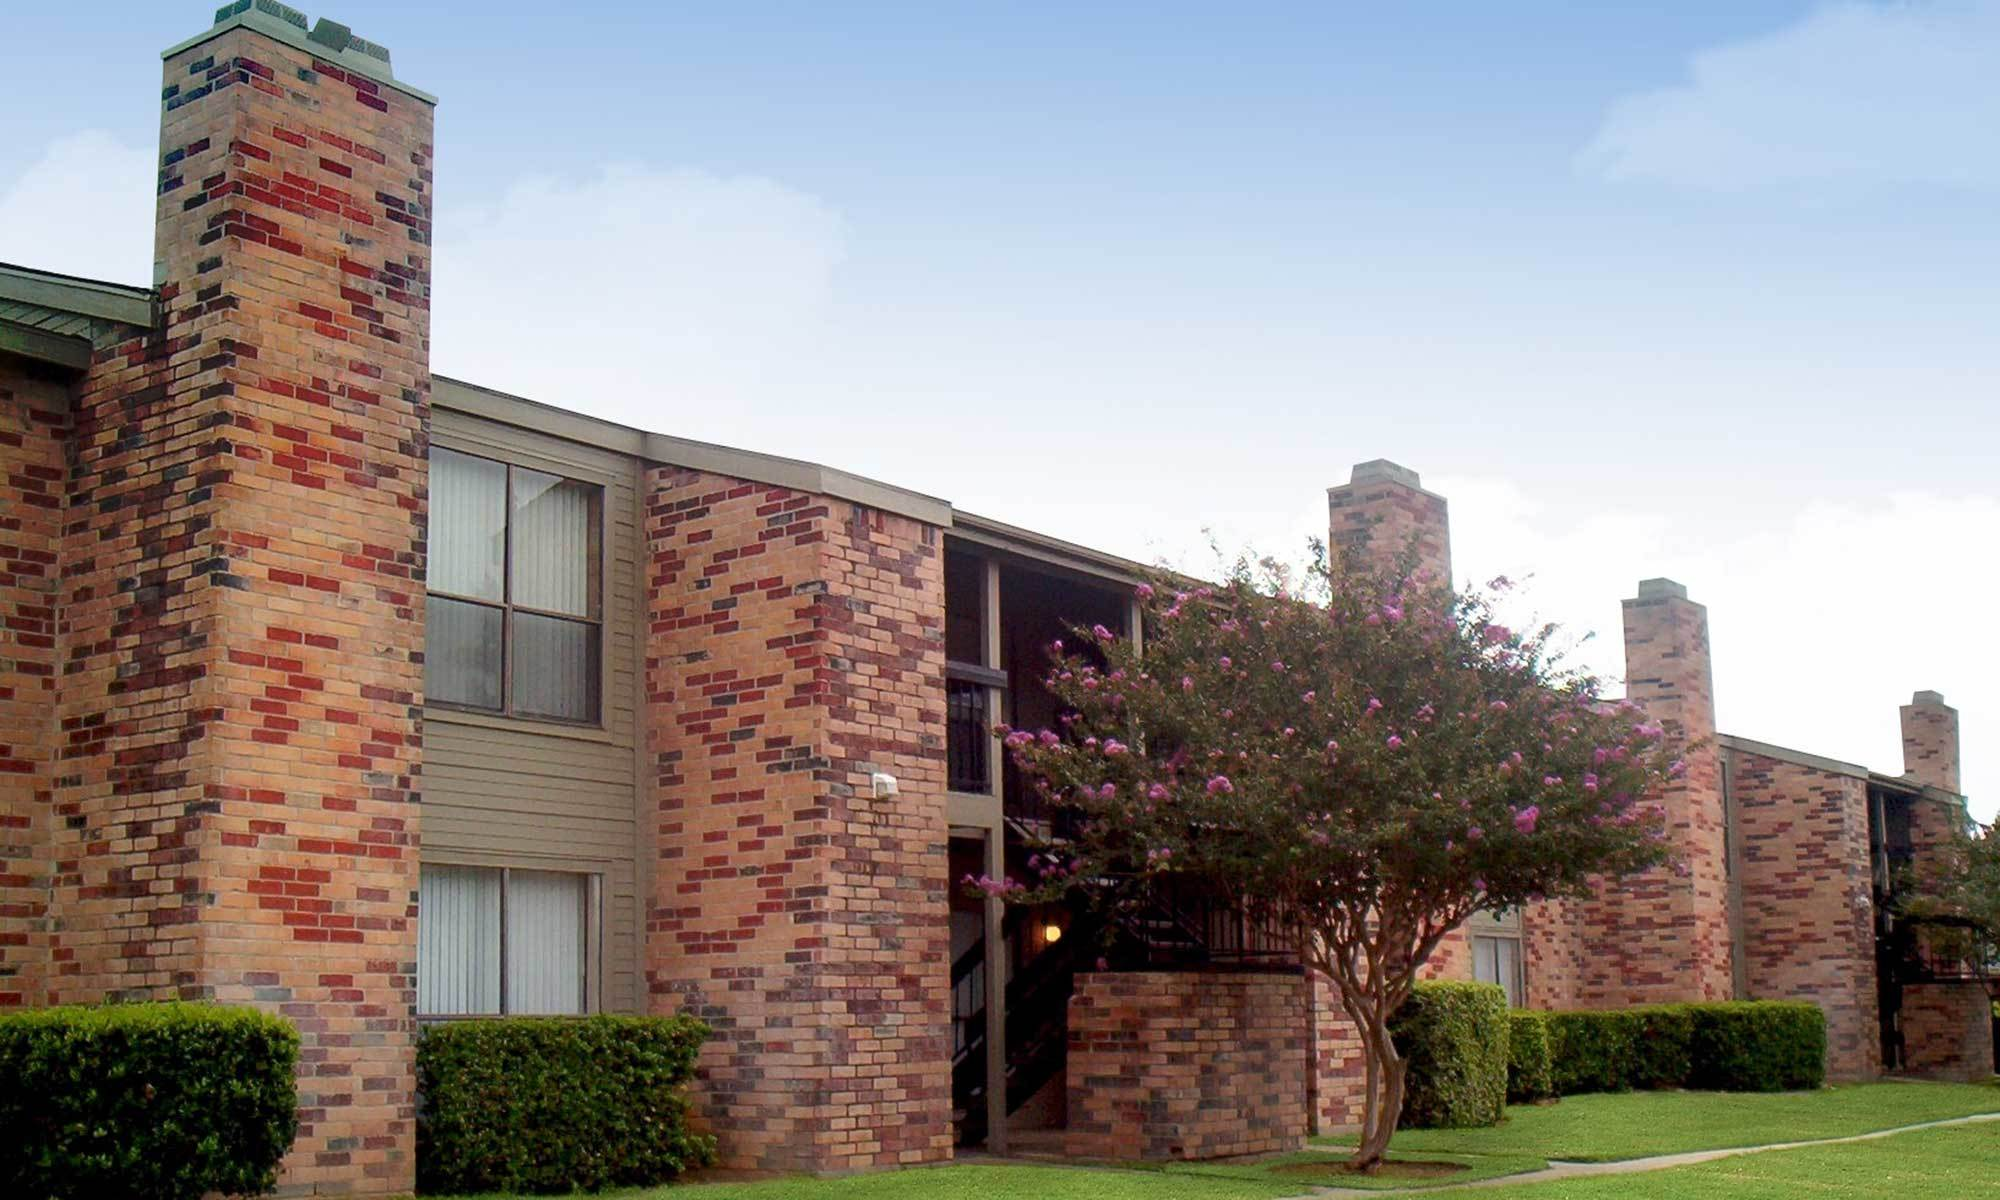 North Central San Antonio, TX Apartments For Rent Near